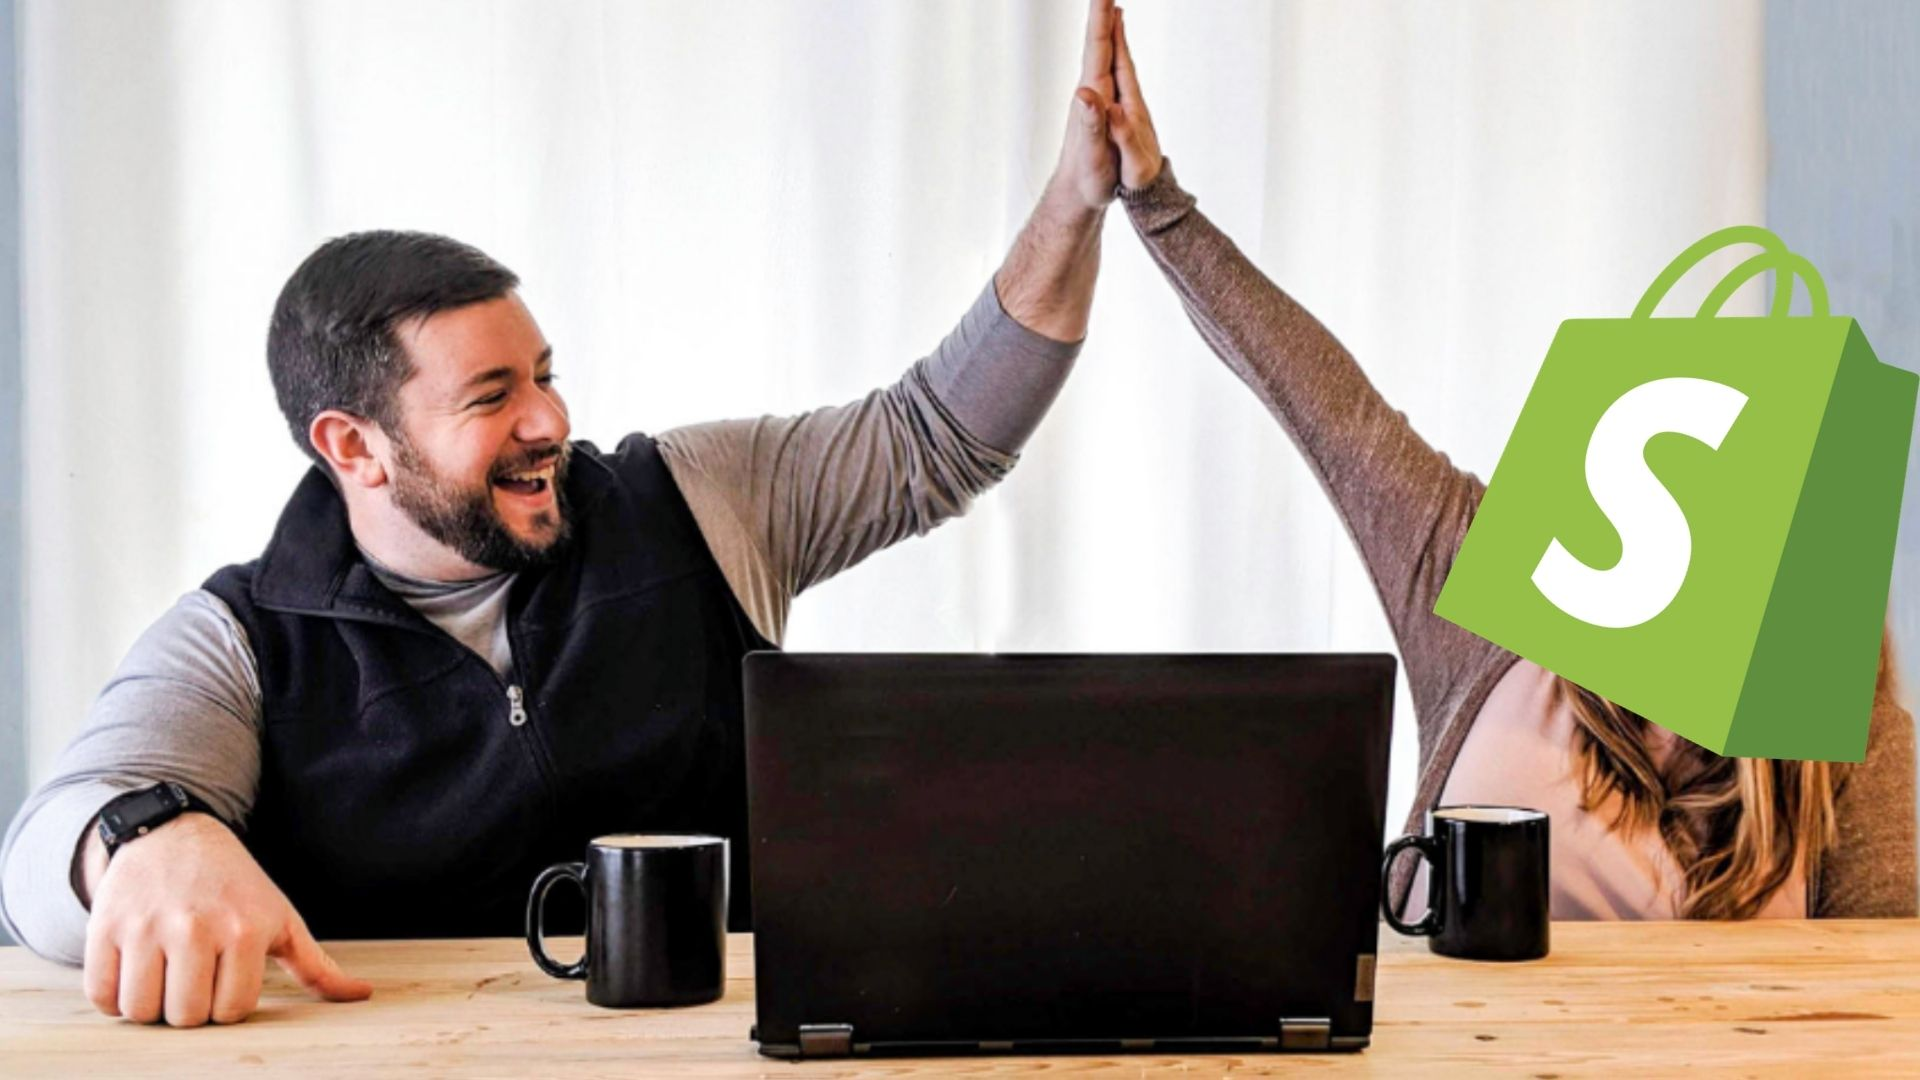 man hi-fiving another person with shopify logo over their face in front of a laptop computer